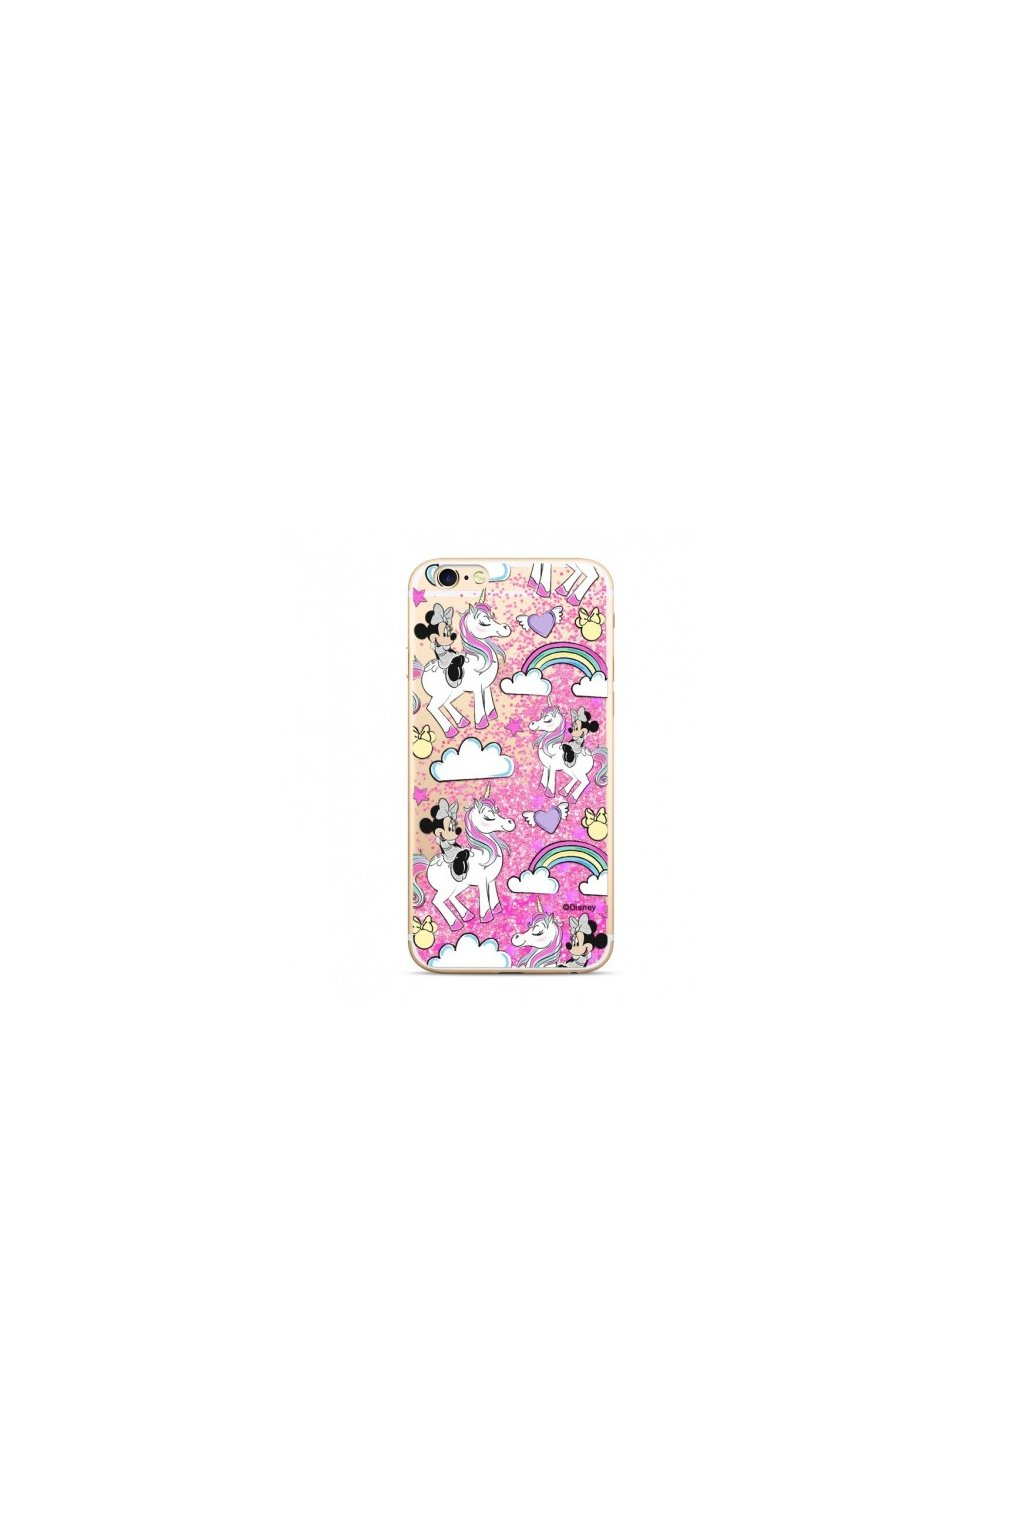 etui nakladka plynny brokat disney minnie 037 iphone 5 5s se rozowy